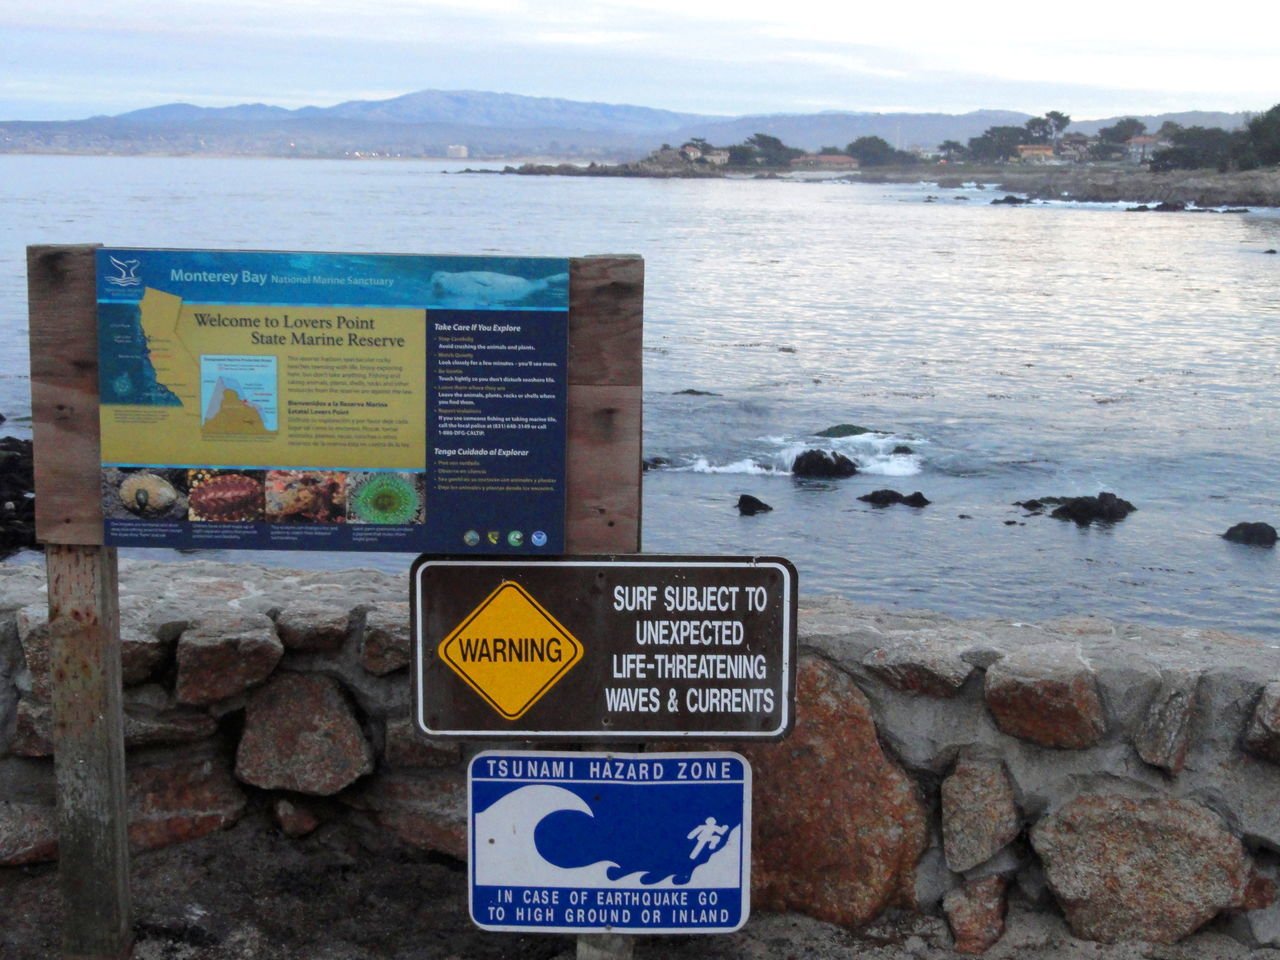 Beach Communication Day Direction Dusk Sky Guidance Information Sign Lovers Point Marine Reserve Mountain Nature Non-western Script Outdoors Rocks On The Beach Sea Shore Signboard Sky Symbol Text Tsunami Hazard Zone Tsunami Sign Water Western Script Yellow